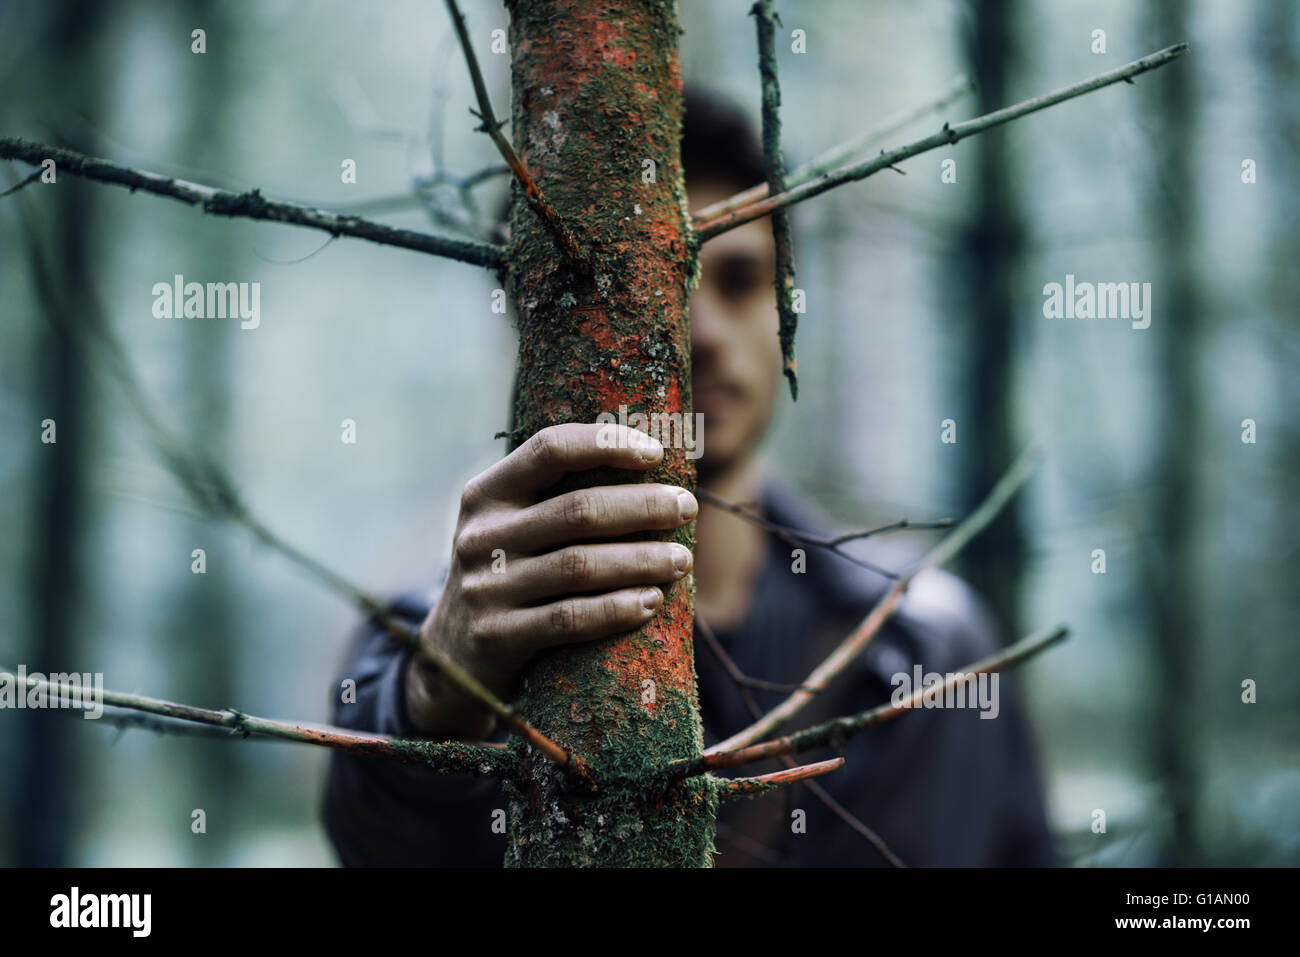 Young man hiding in the woods and holding a trunk, hand on foreground, selective focus - Stock Image